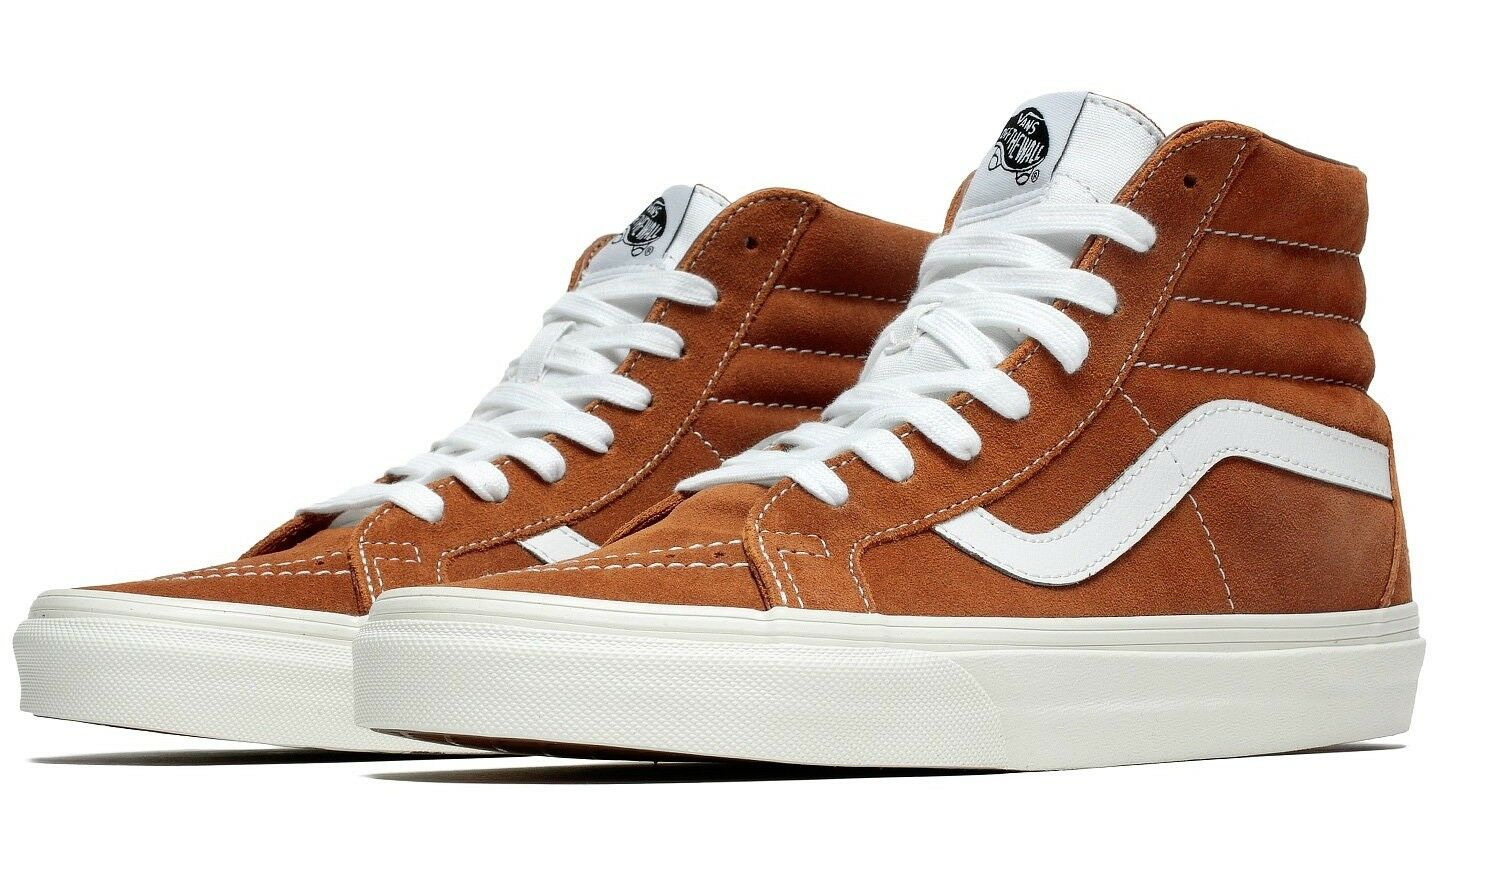 VANS SK8 MEN HI REISSUE RETRO SPORT MEN SK8 Schuhe GLAZED GINGER VN0A2XSBO14 SIZE 9.5 NEW 119ca4